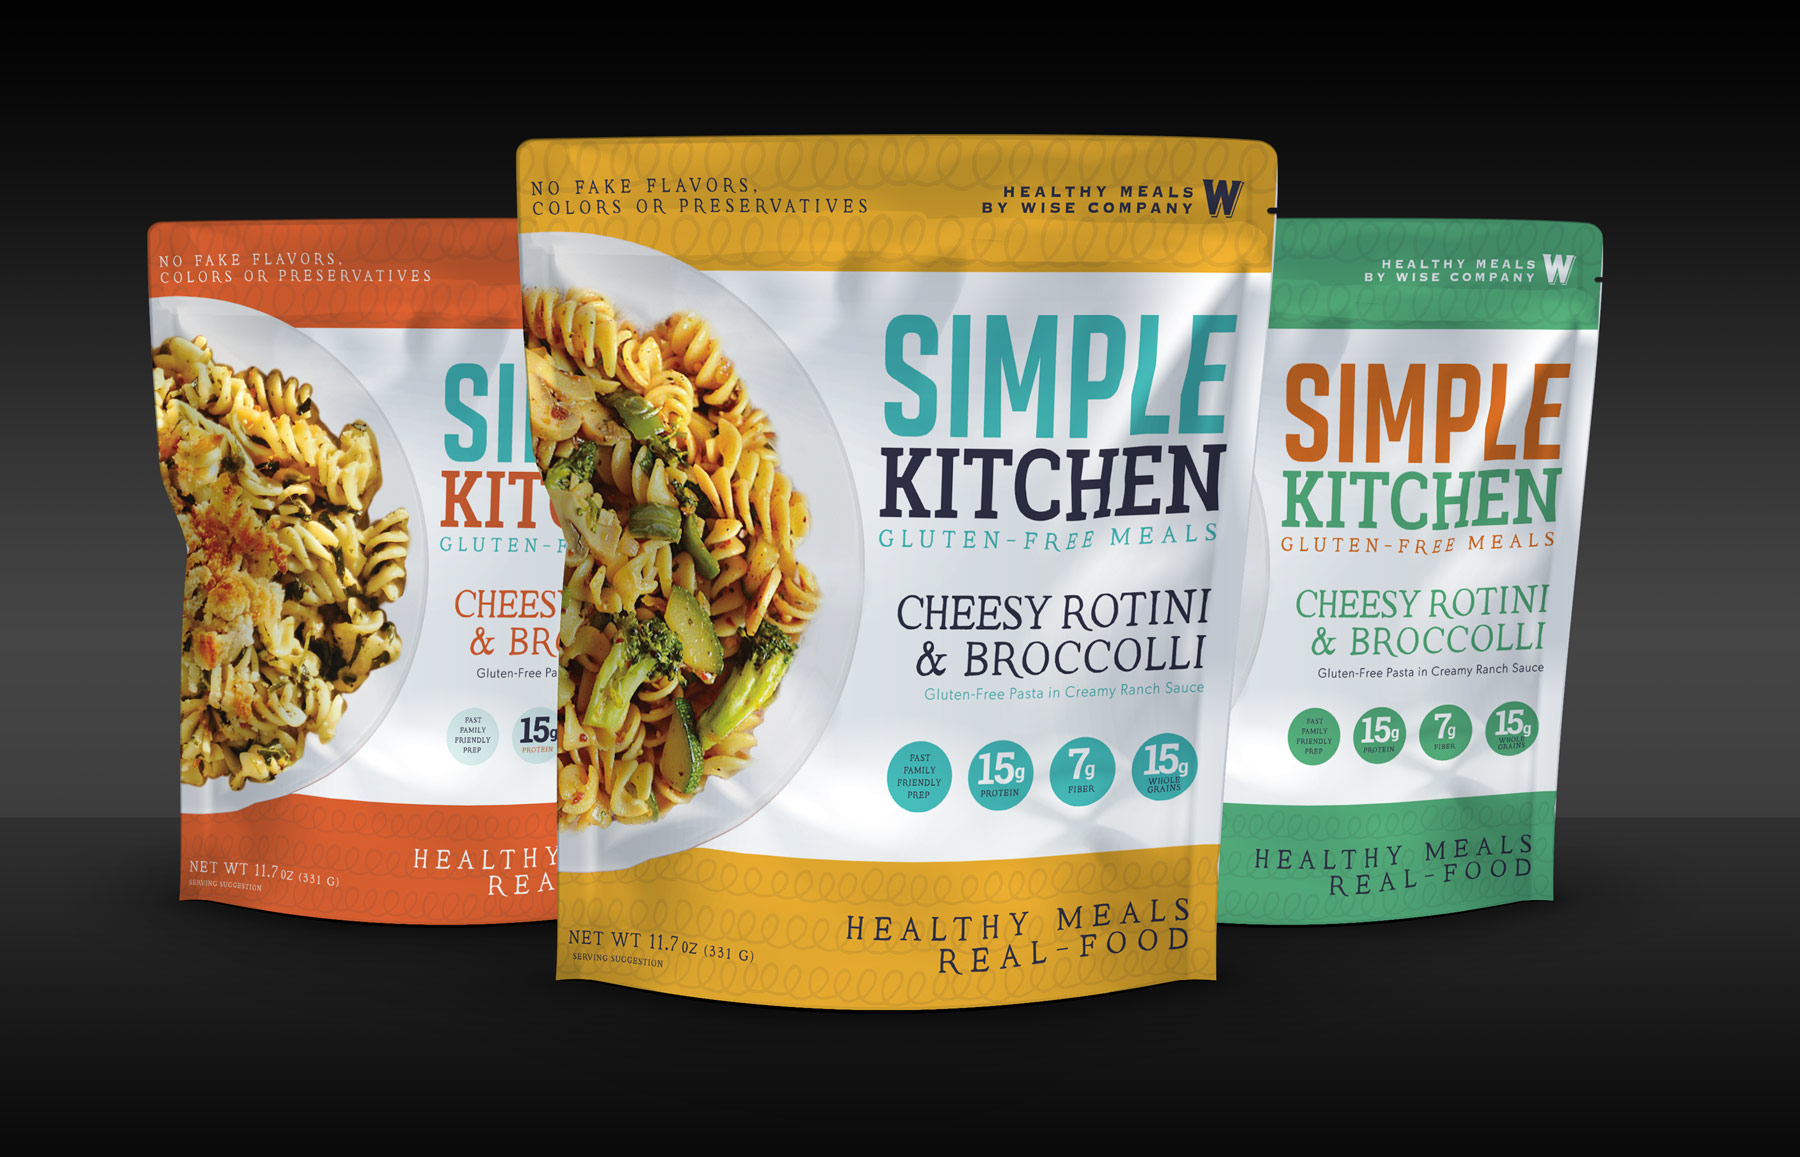 Simple Kitchen product packaging